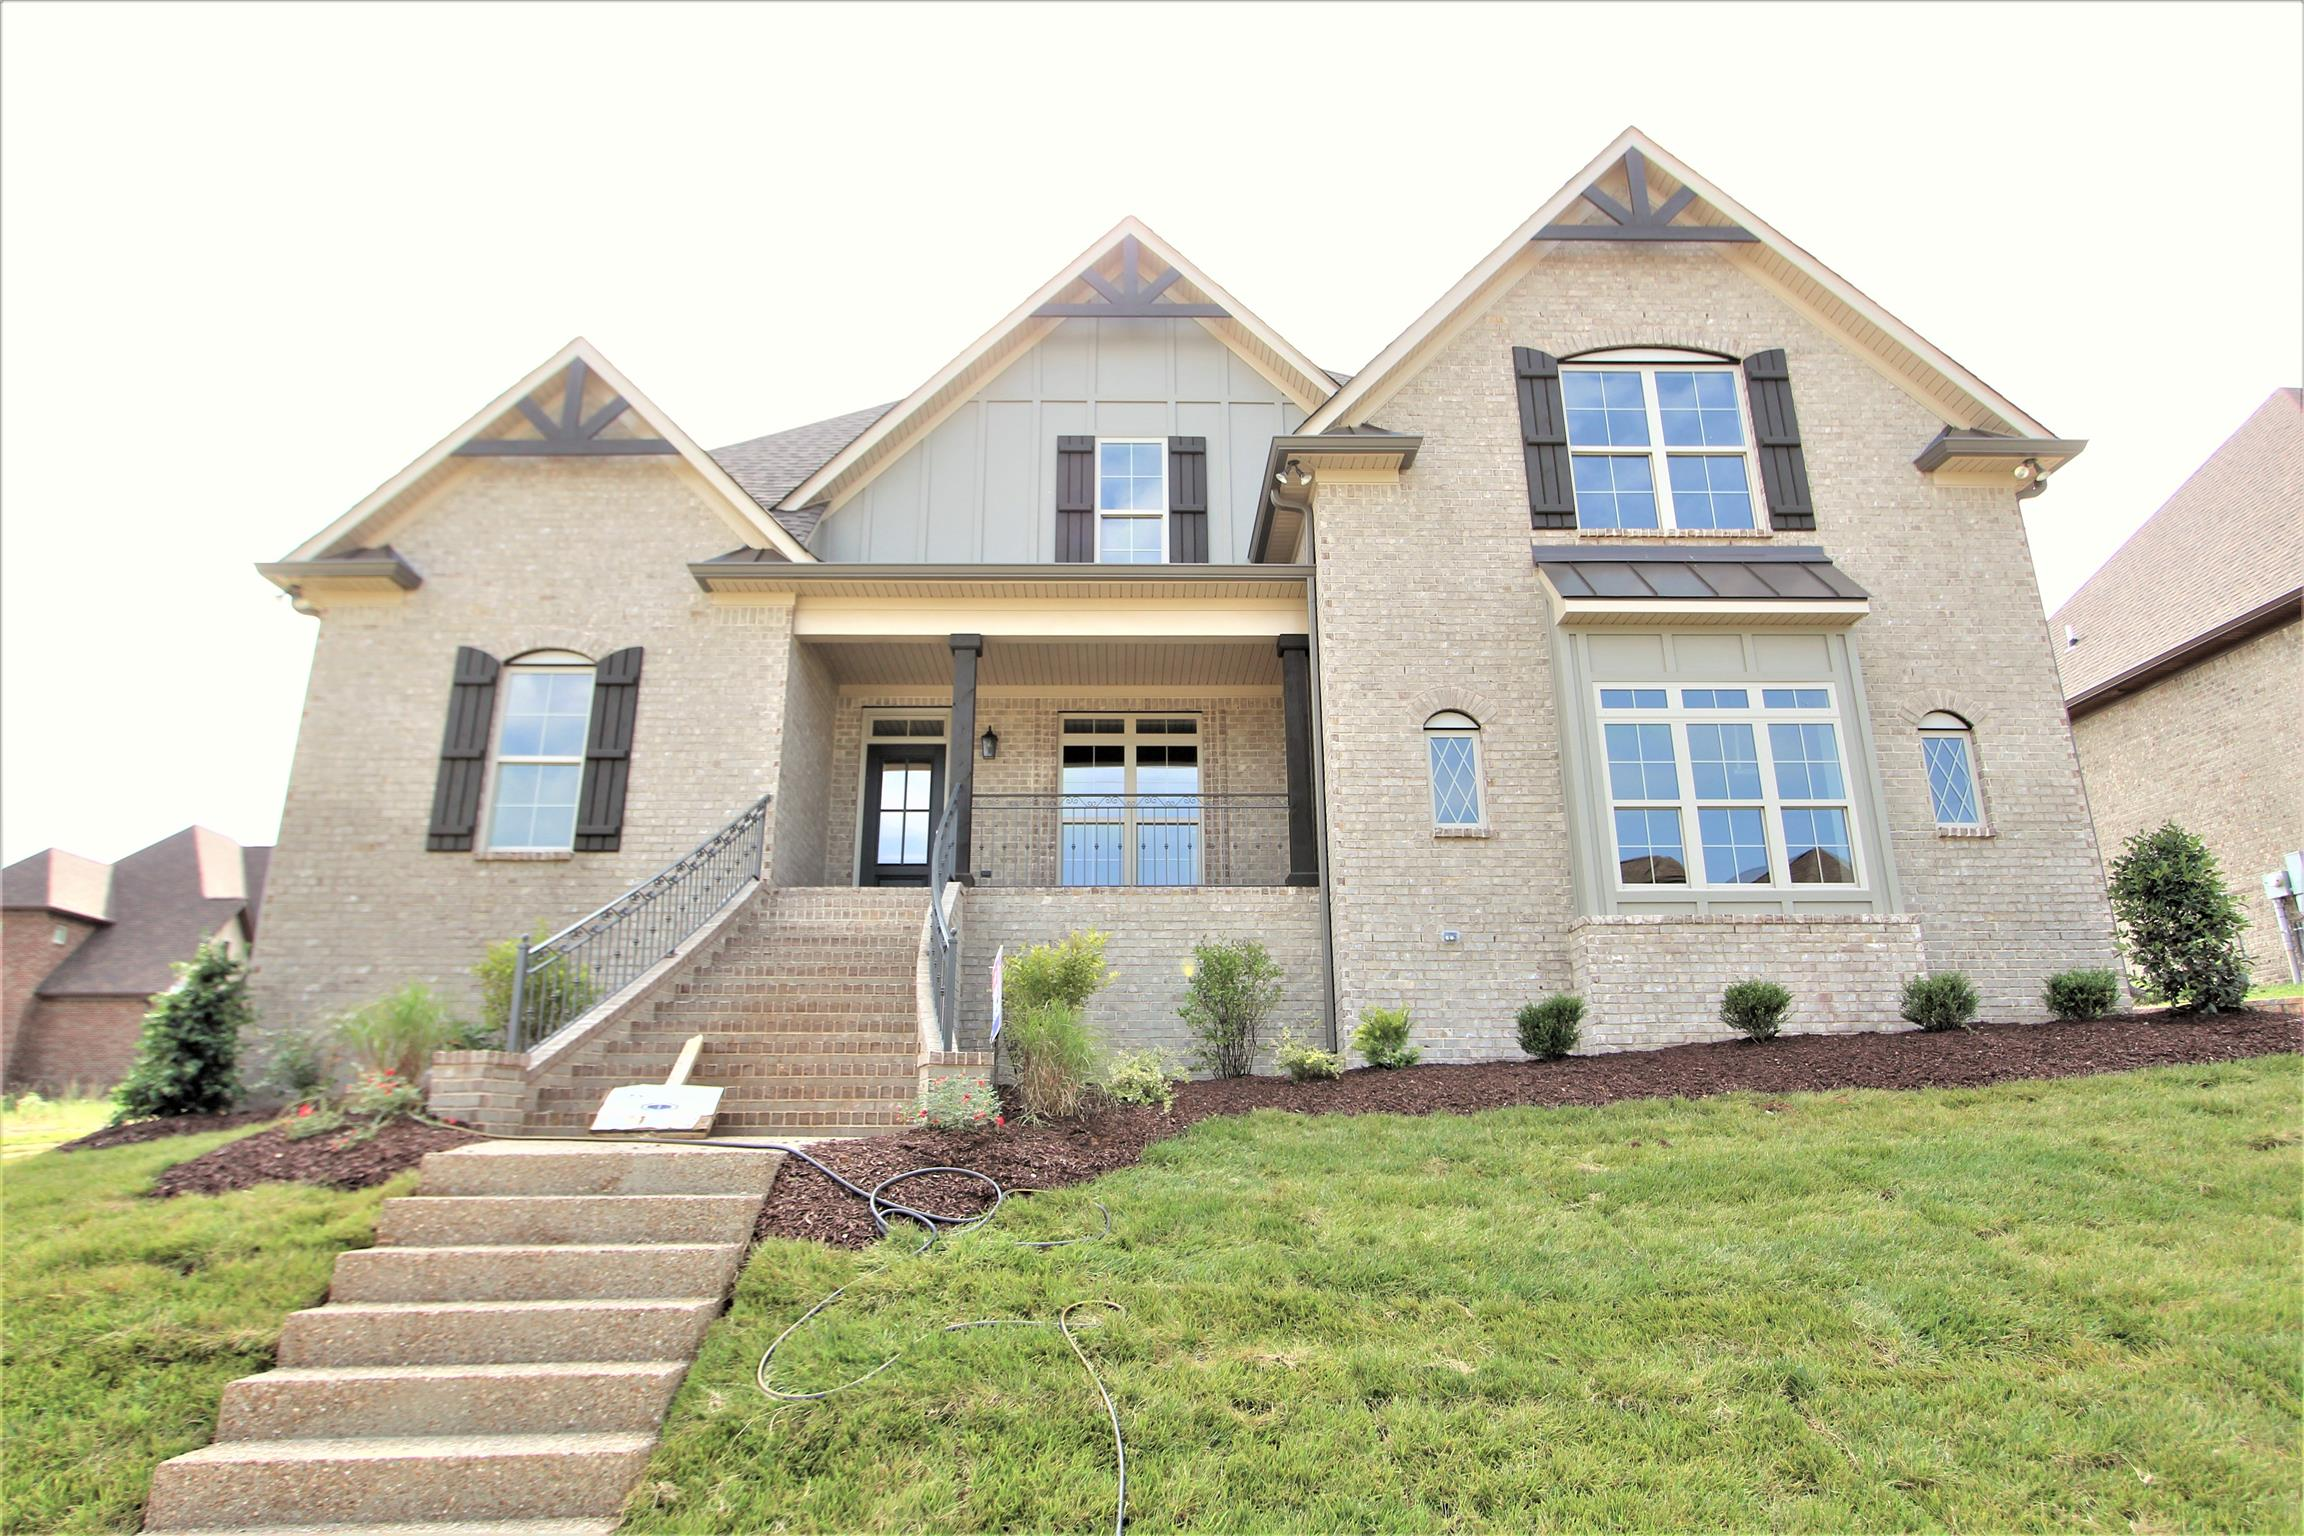 441 Whitley Way #240-C 37122 - One of Mount Juliet Homes for Sale